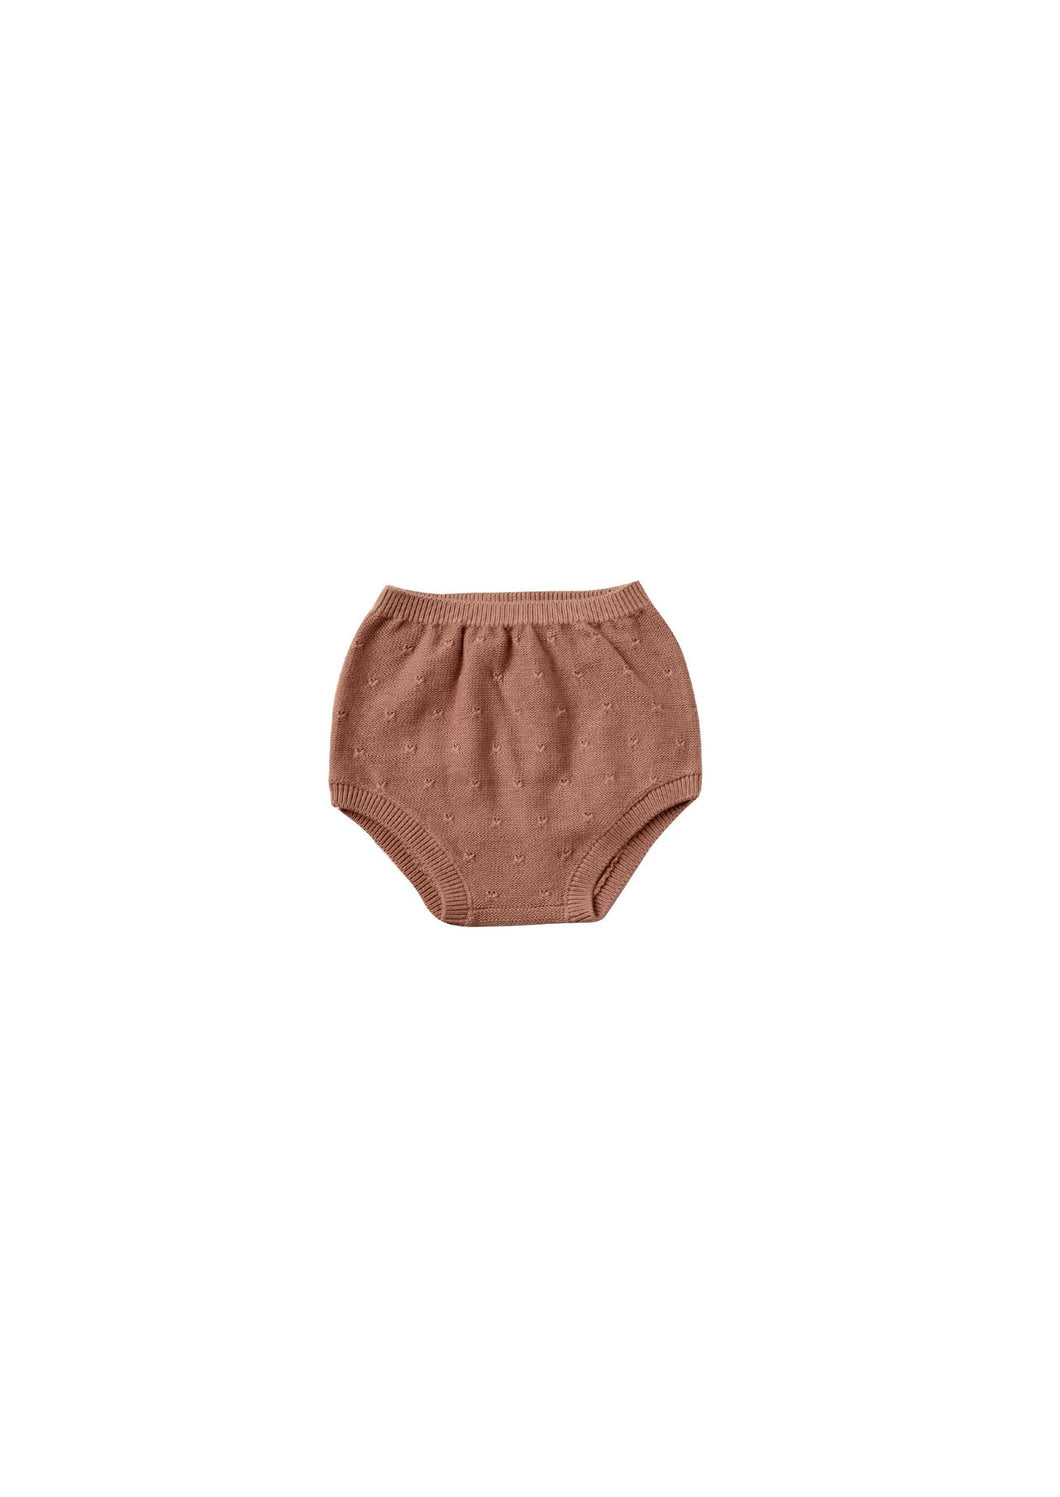 Quincy Mae | Knit Bloomer | Clay